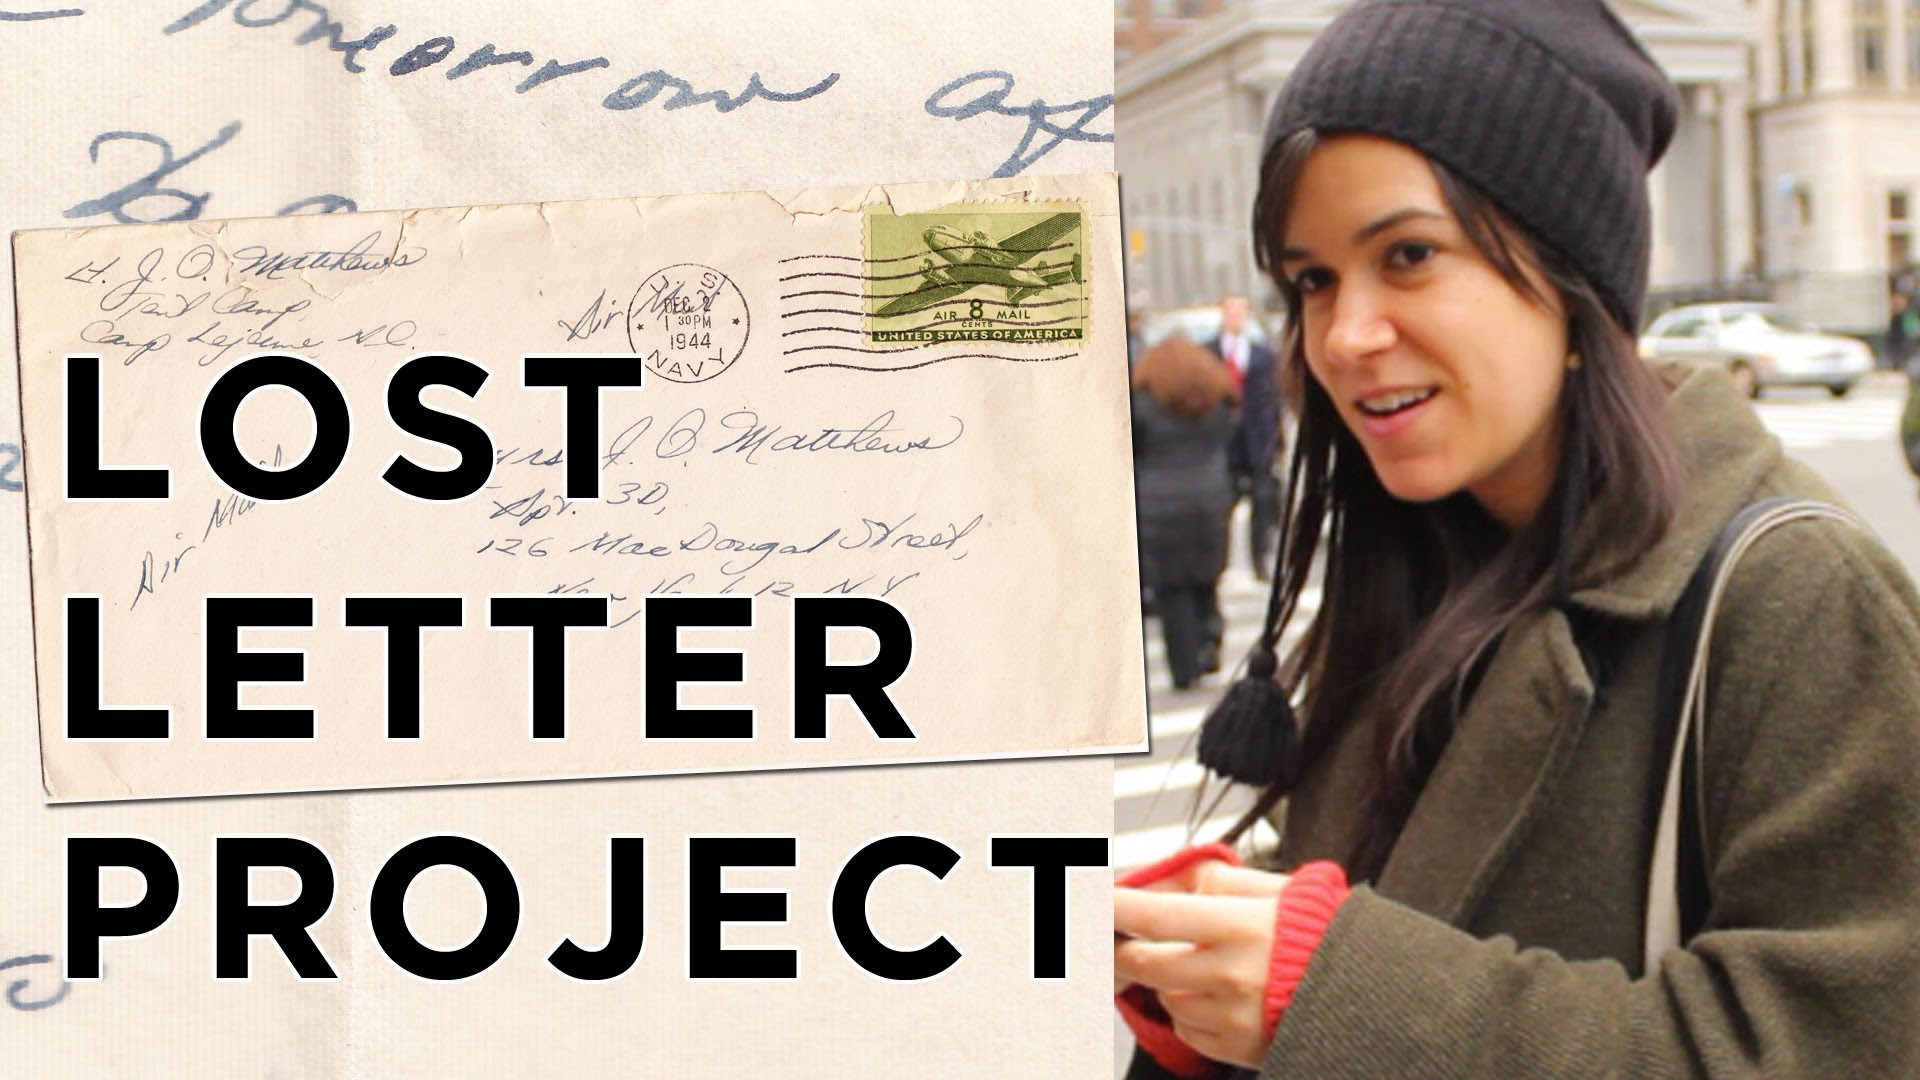 Lost Letter Project Aims to Find the Intended Recipient of Mail